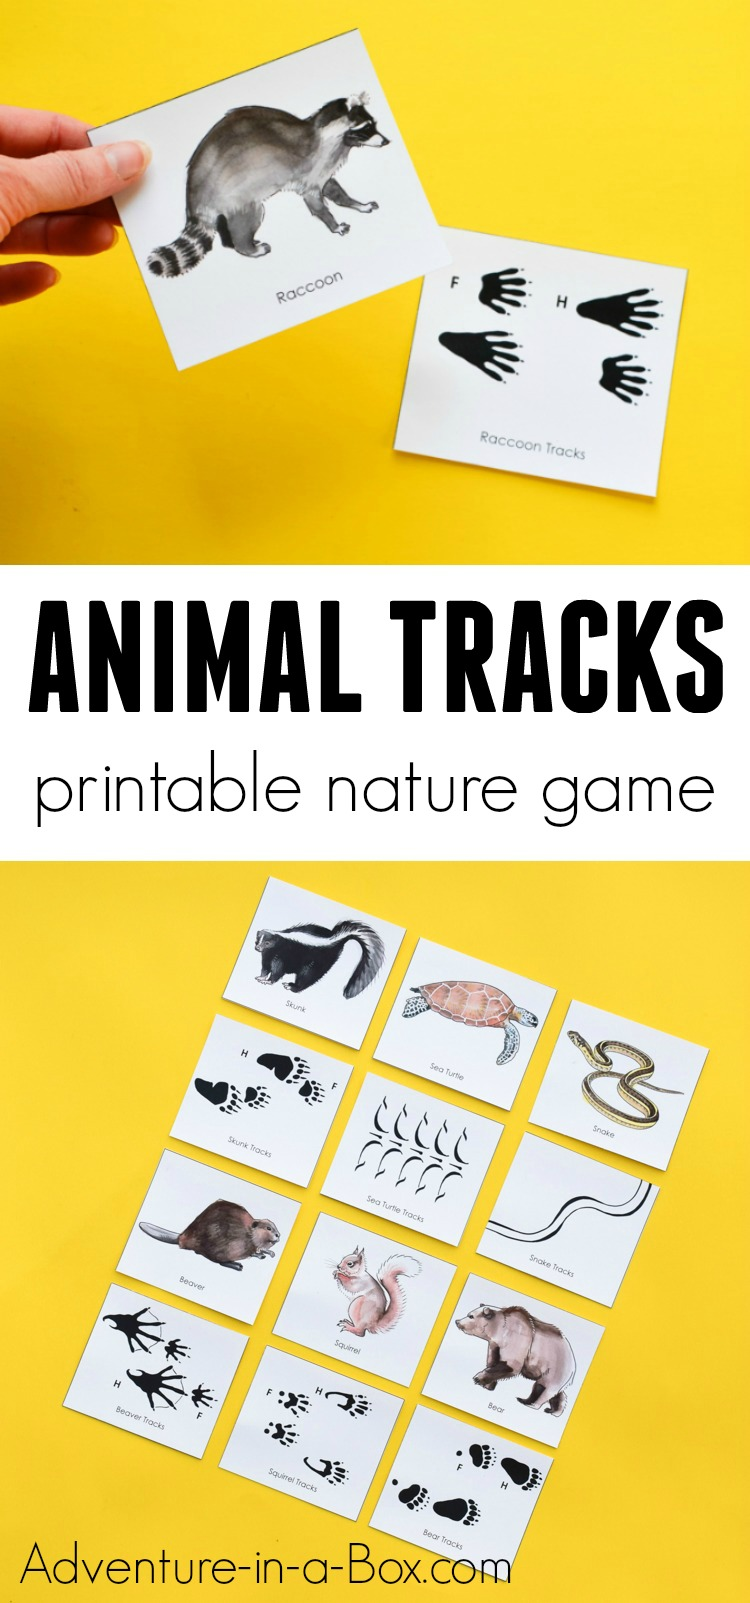 Kids will love to play and learn from this printable educational matching game, which teaches how to match animals with their tracks and where to find them! #nature #printable #homeschool #stem #education